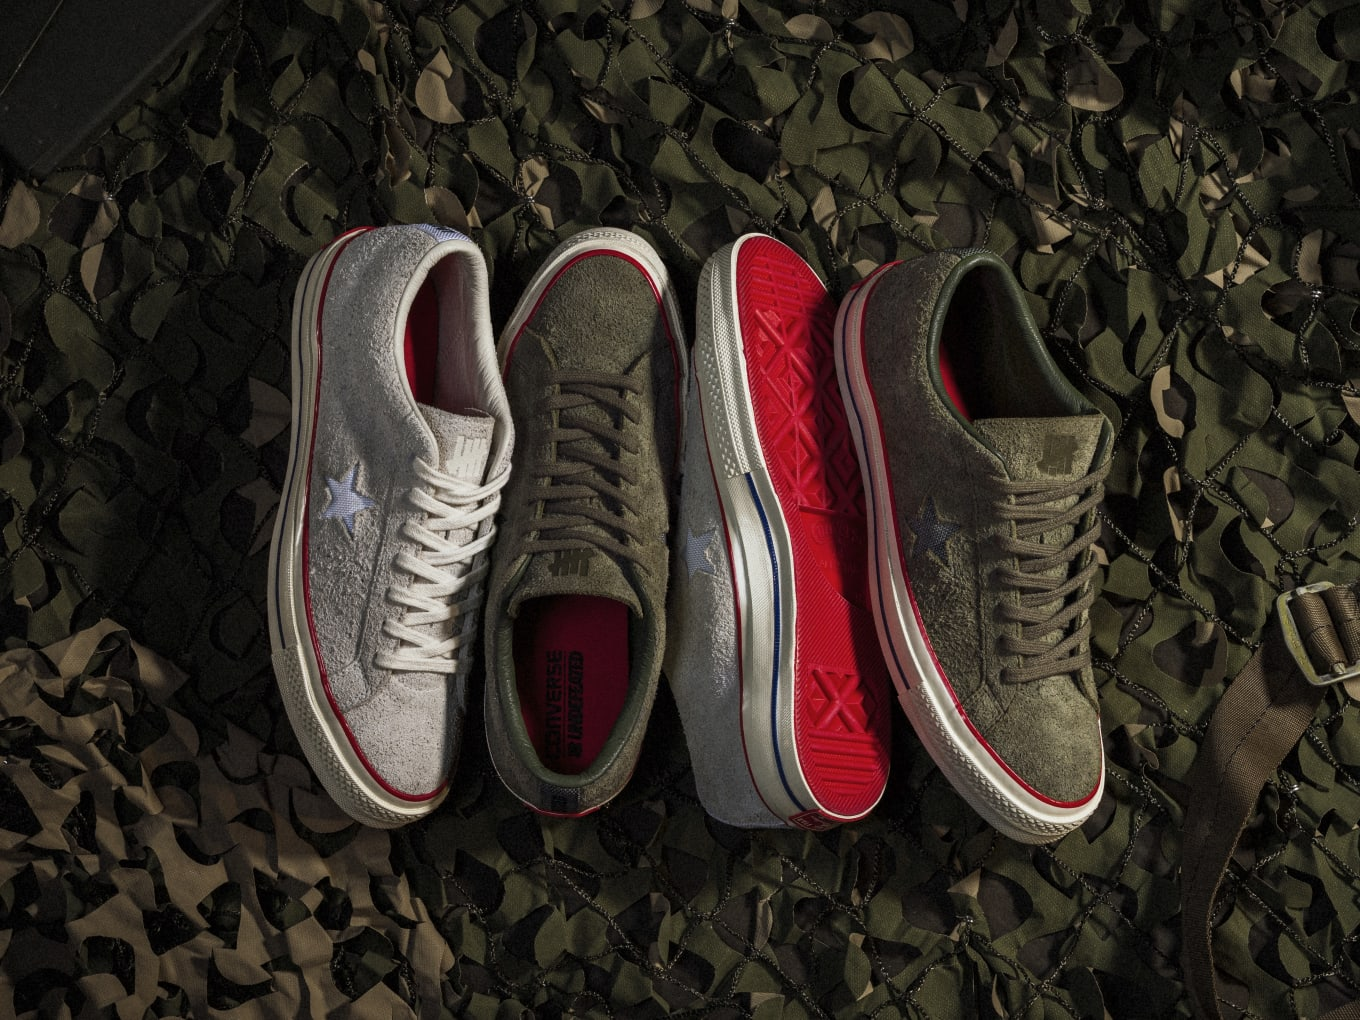 26d054e2a98d71 Undefeated and Converse Team Up for One Stars. Inspired by both brand s  sport and military influences.